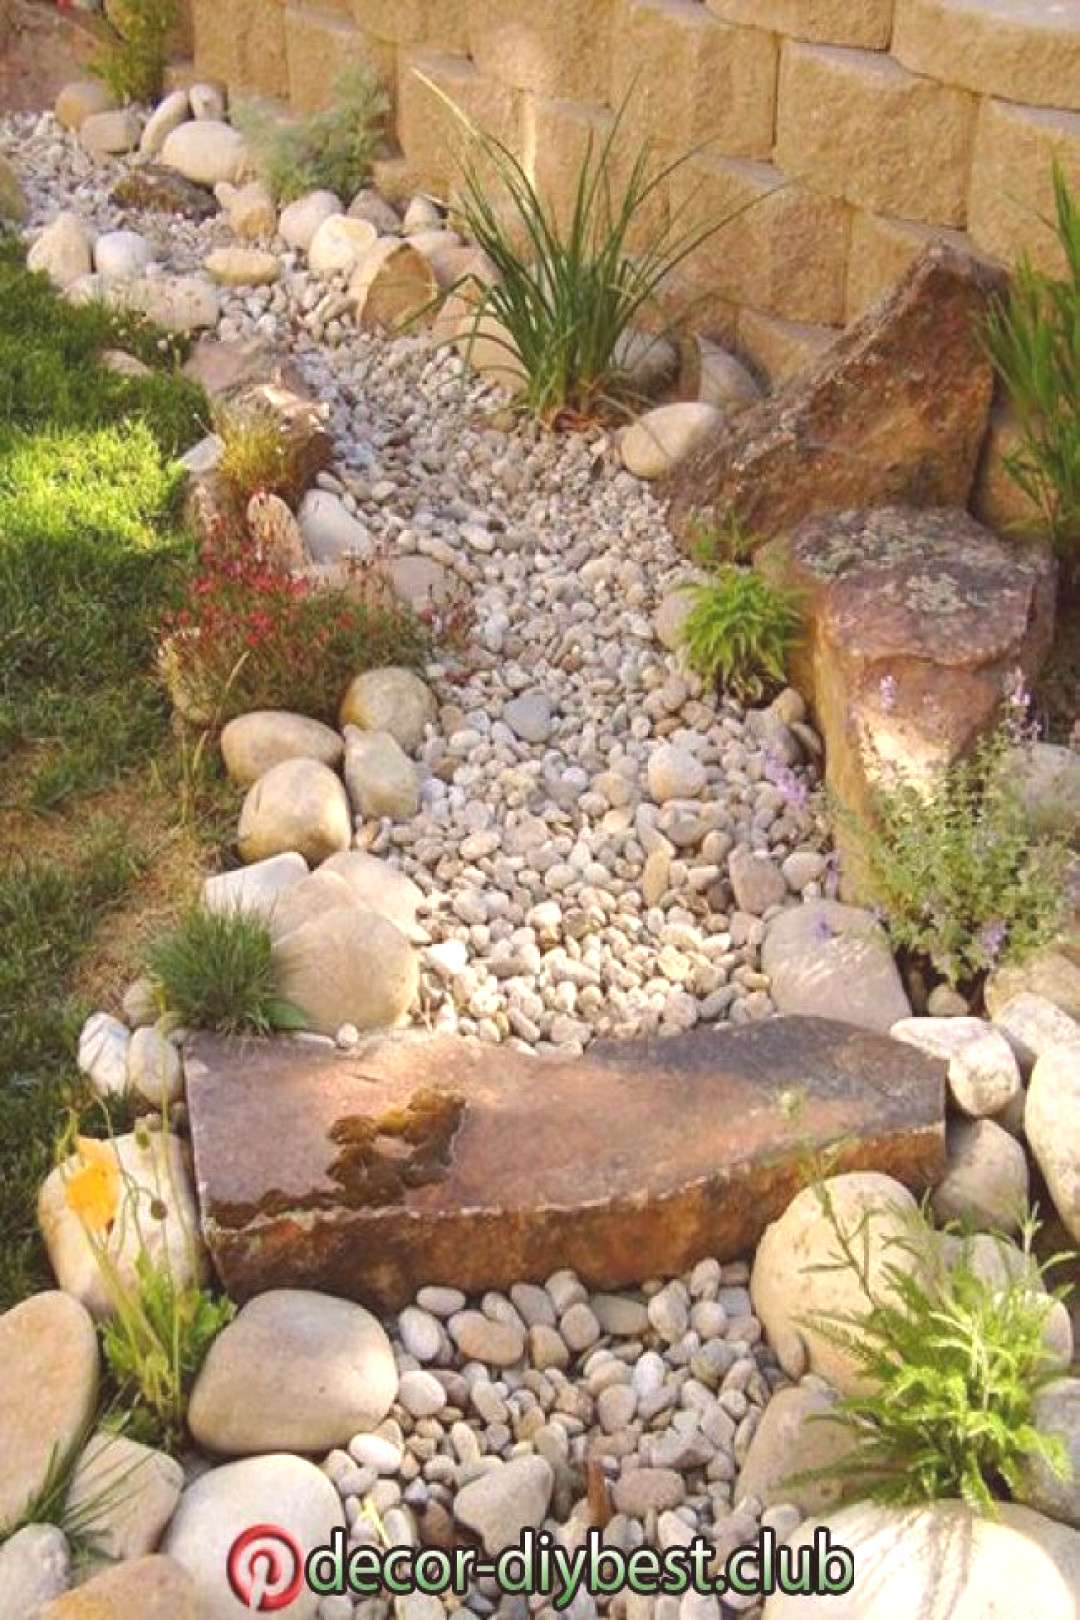 50 Diy Dry Creek Landscaping Ideas With Pictures! | Water wise landscaping, Land...#creek